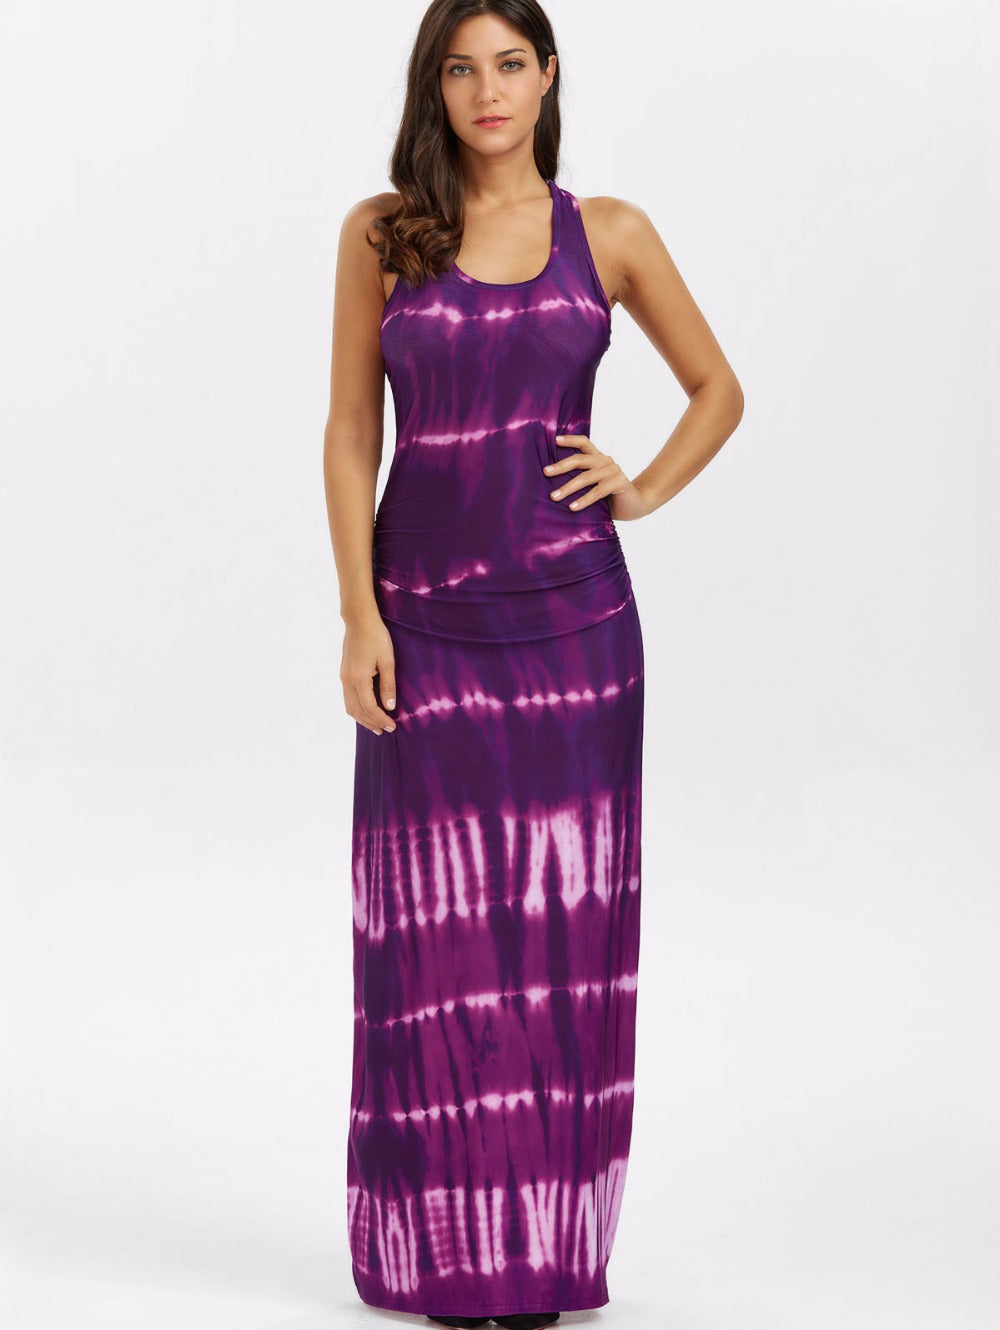 Tie Dye Hot Miami Shades Day Dress 60034d9724